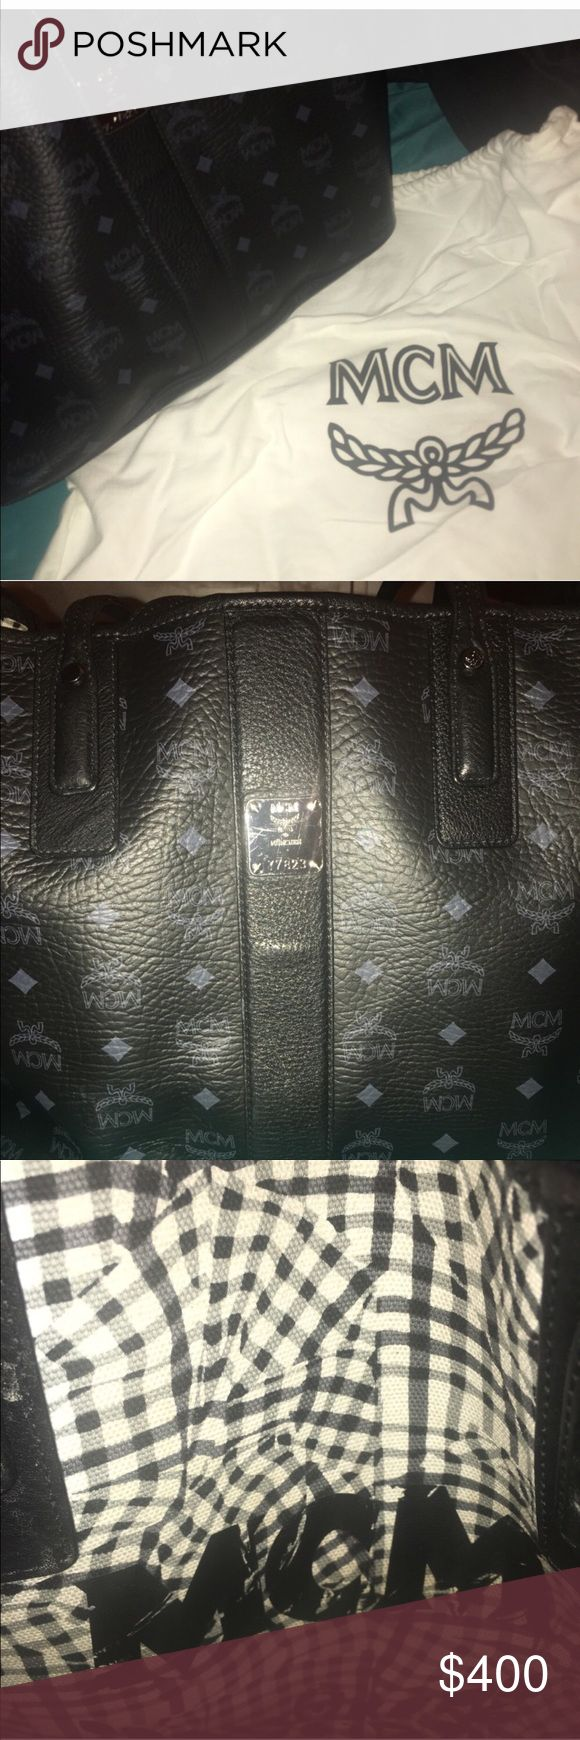 MCM TOTE 100% Authentic PERFECT CHRISTMAS GIFT IN EXCELLENT CONDITION ! got it from Nordstroms a a couple months ago but i dont use it anymore. I already sold the clutch separately! You can bring it to just about any high end store and they can verify its authenticity i dont buy fake stuff! PRICE NEGOTIABLE TRYING TO GET RID OF ASAP No rediculous offers i paid 695$ will take 300 through pp MCM Bags Totes